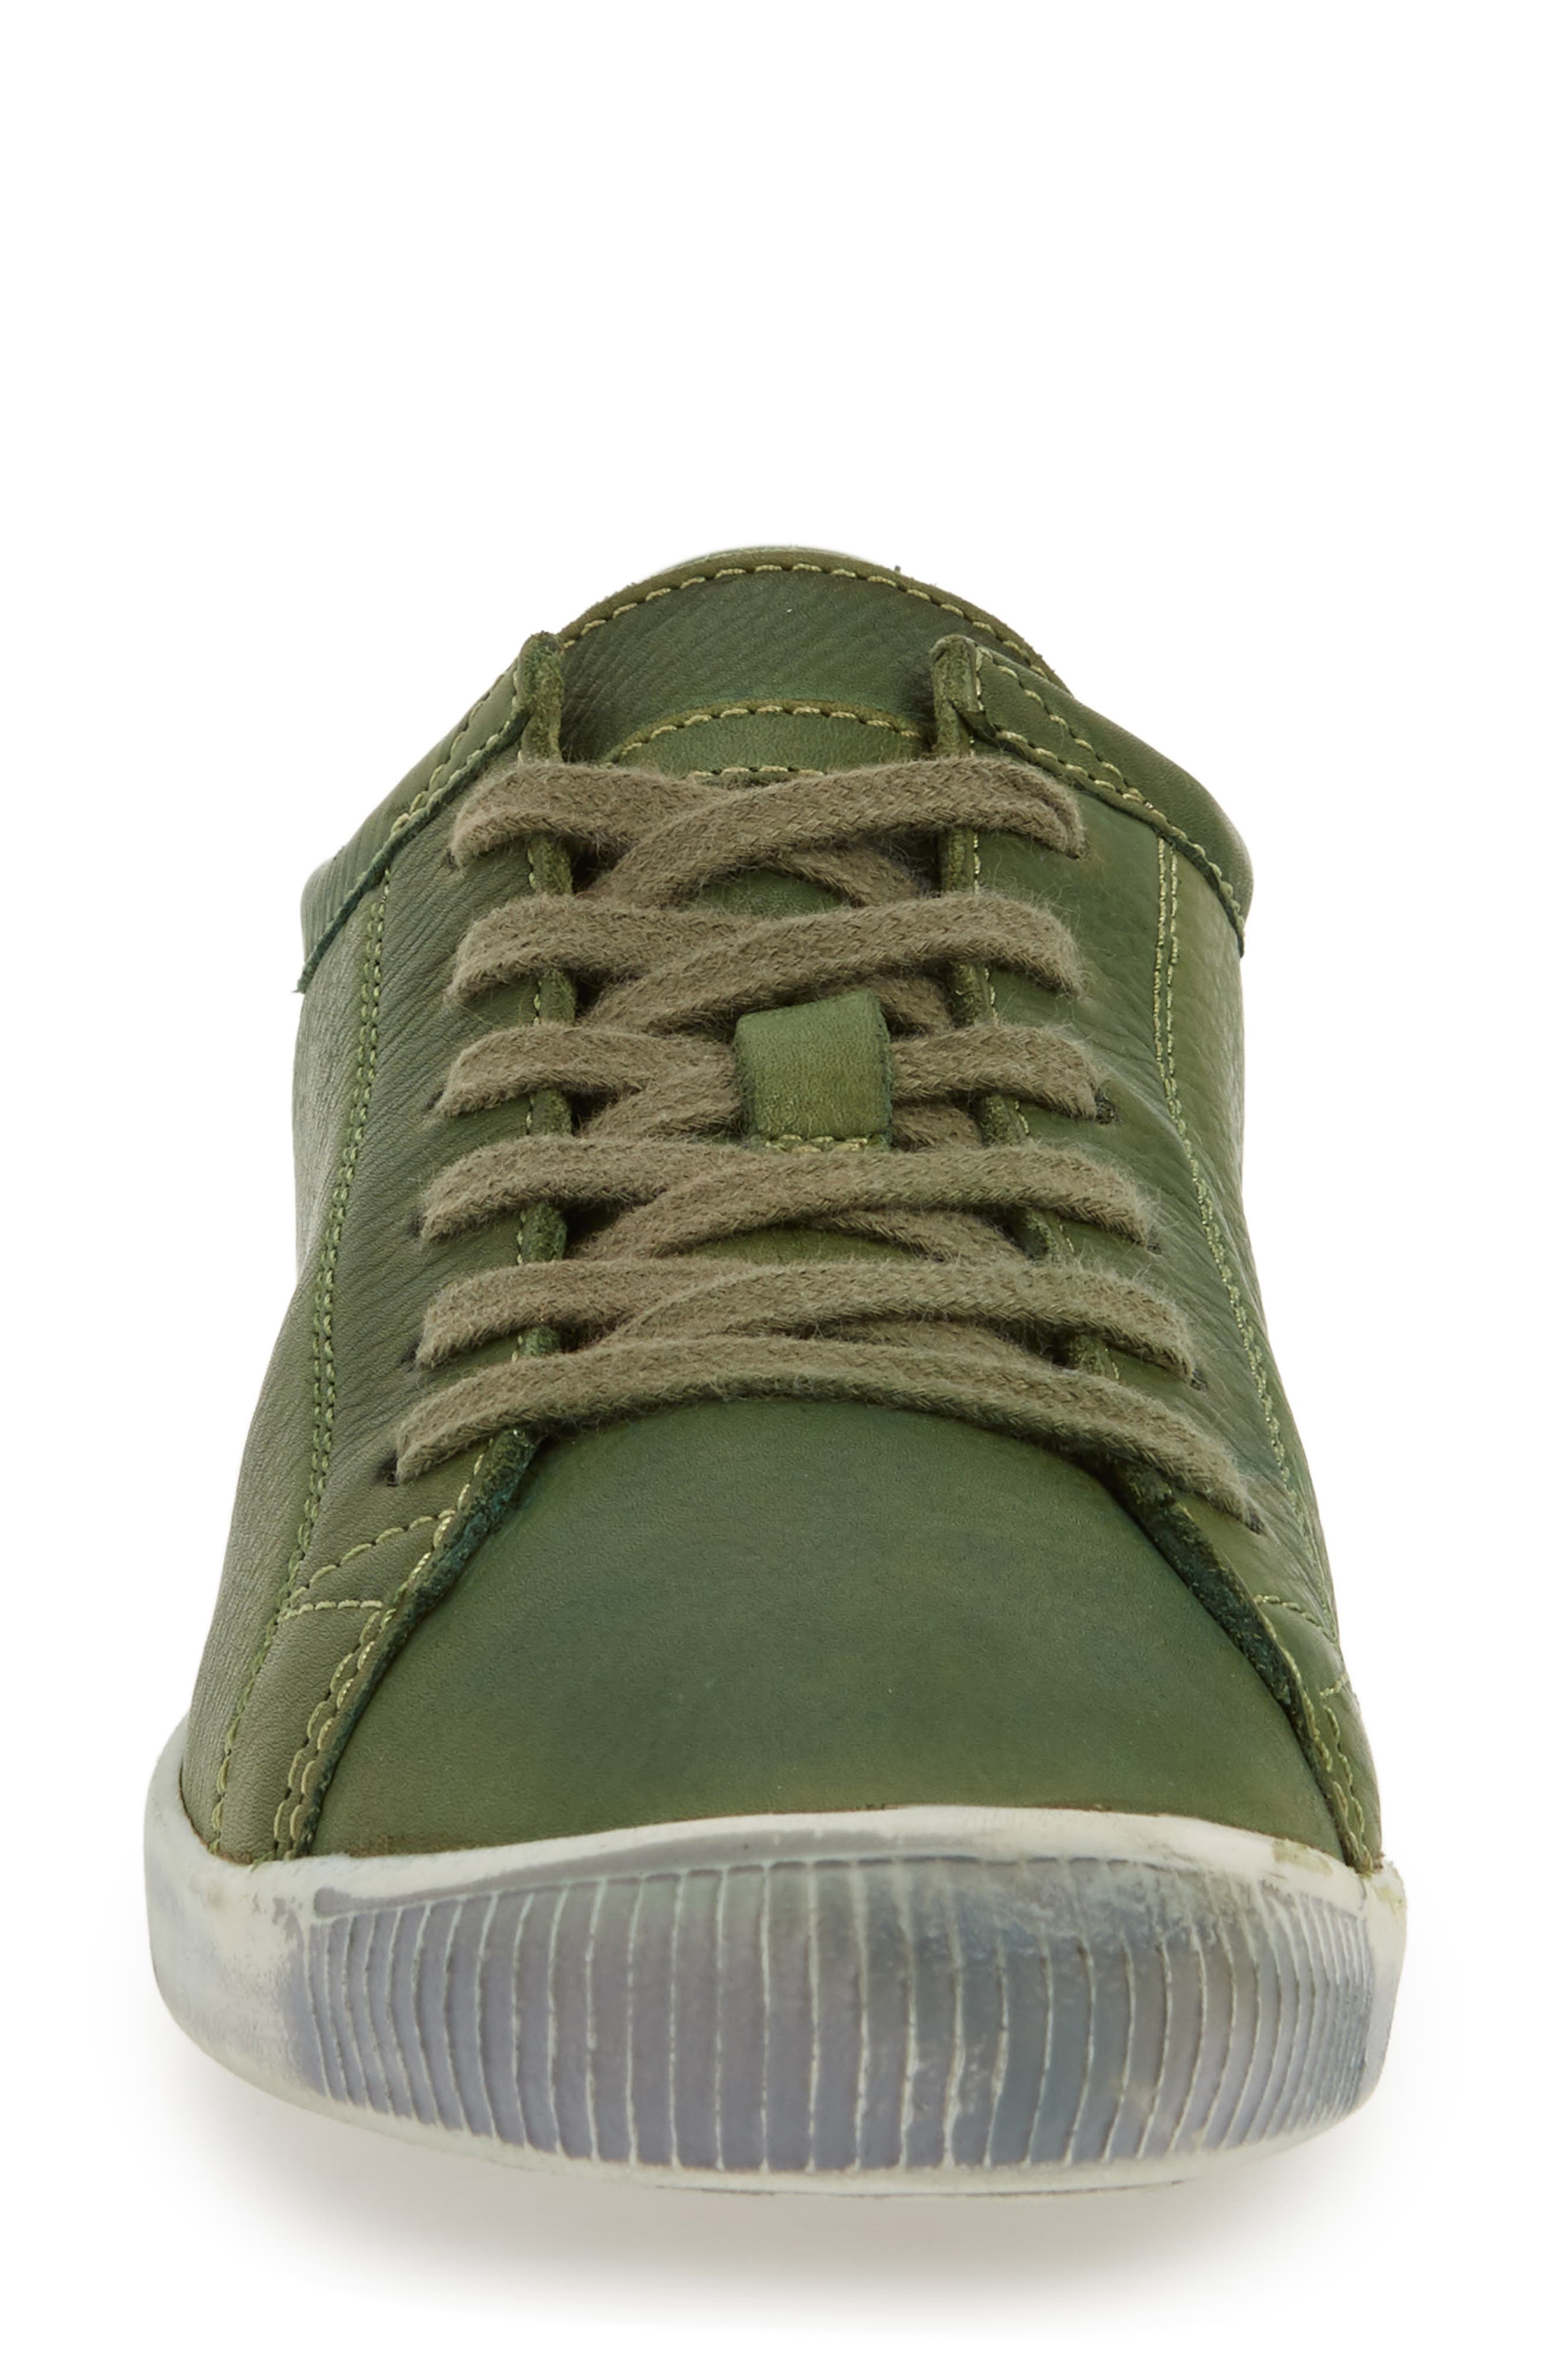 Isla Distressed Sneaker,                             Alternate thumbnail 6, color,                             Forest Green Washed Leather